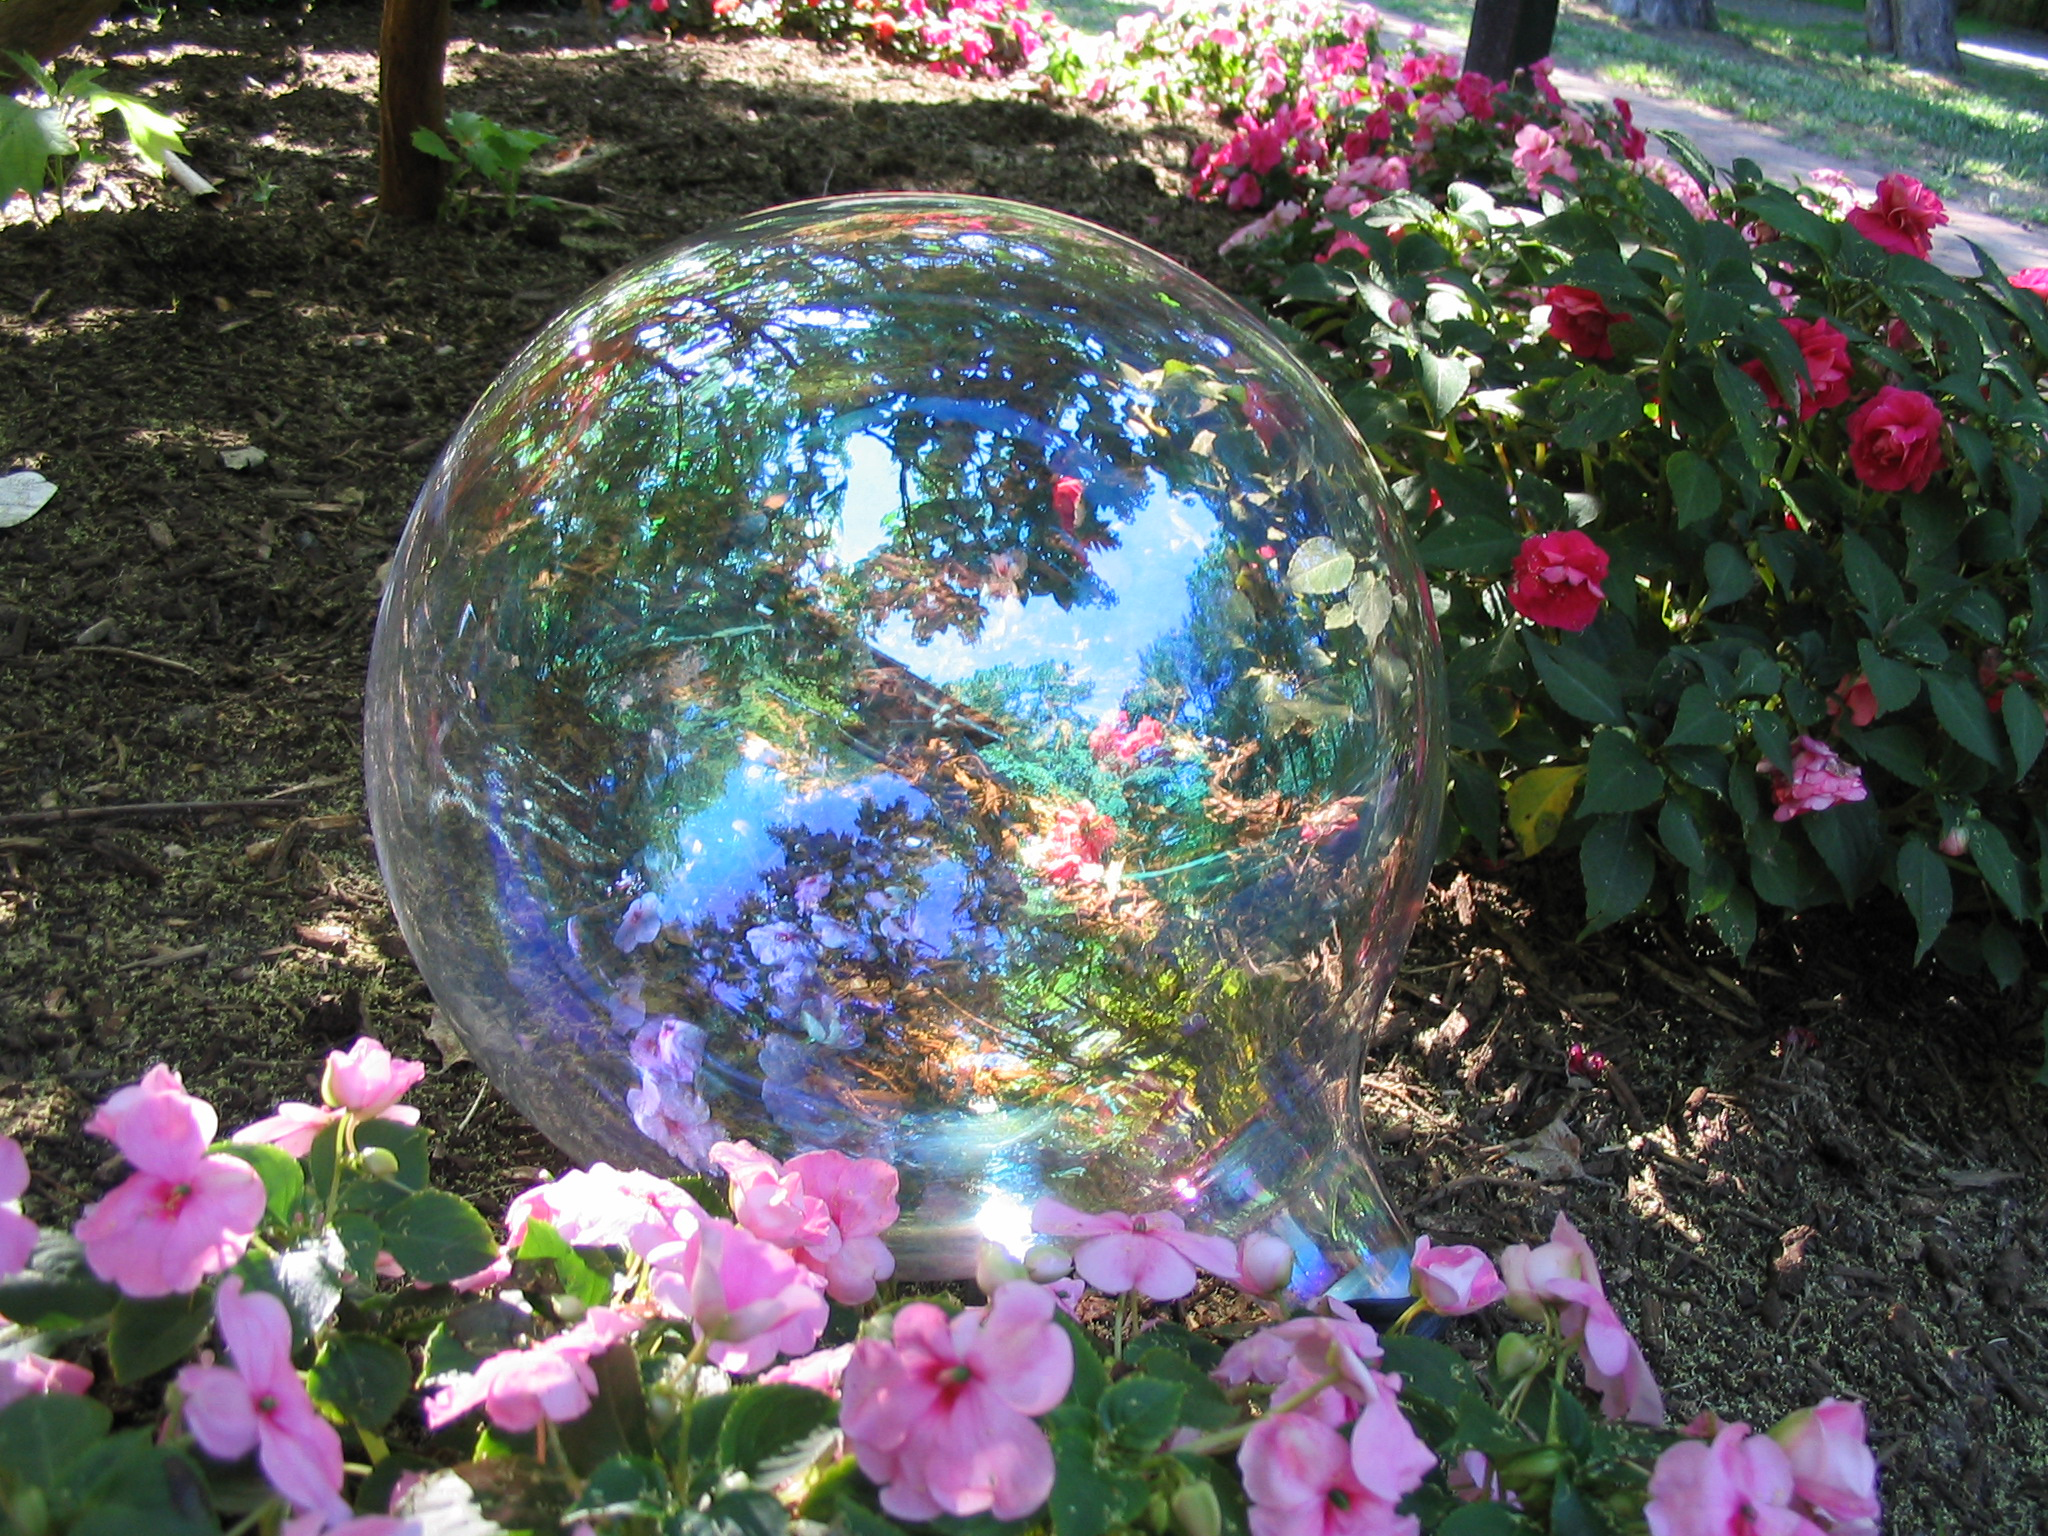 Clear gazing ball in flower garden